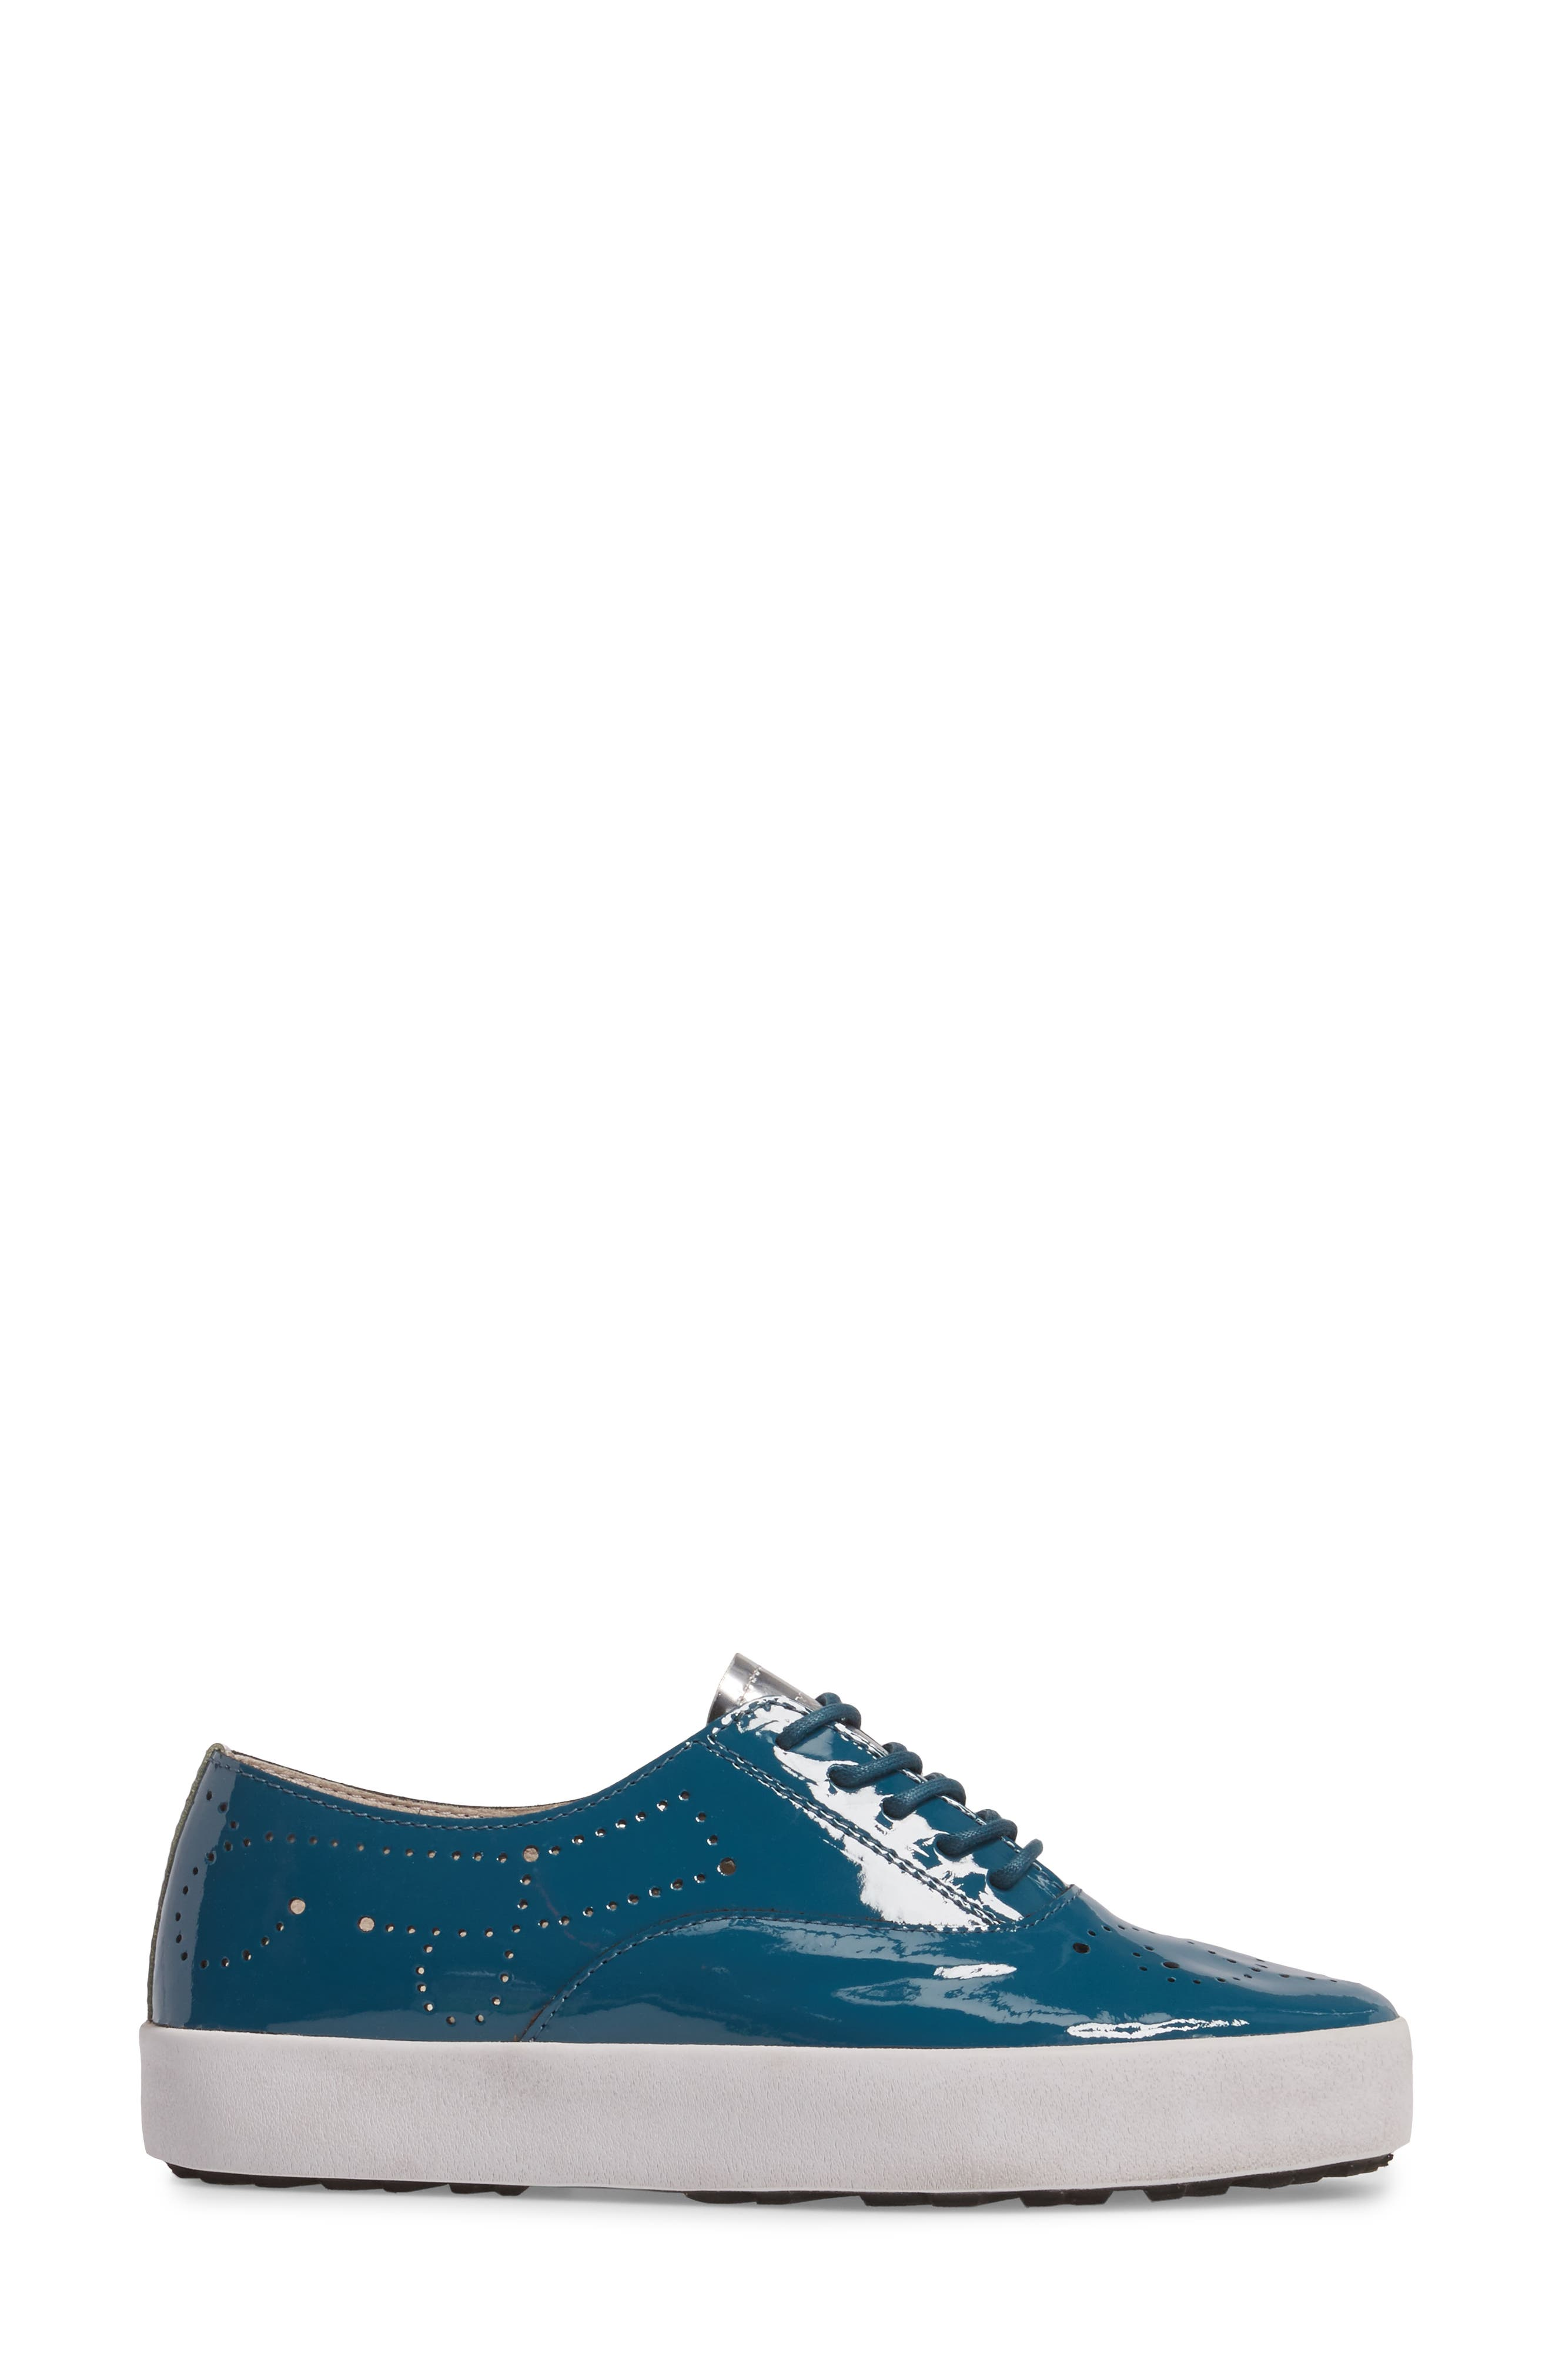 NL41 Sneaker,                             Alternate thumbnail 3, color,                             Turquoise Patent Leather